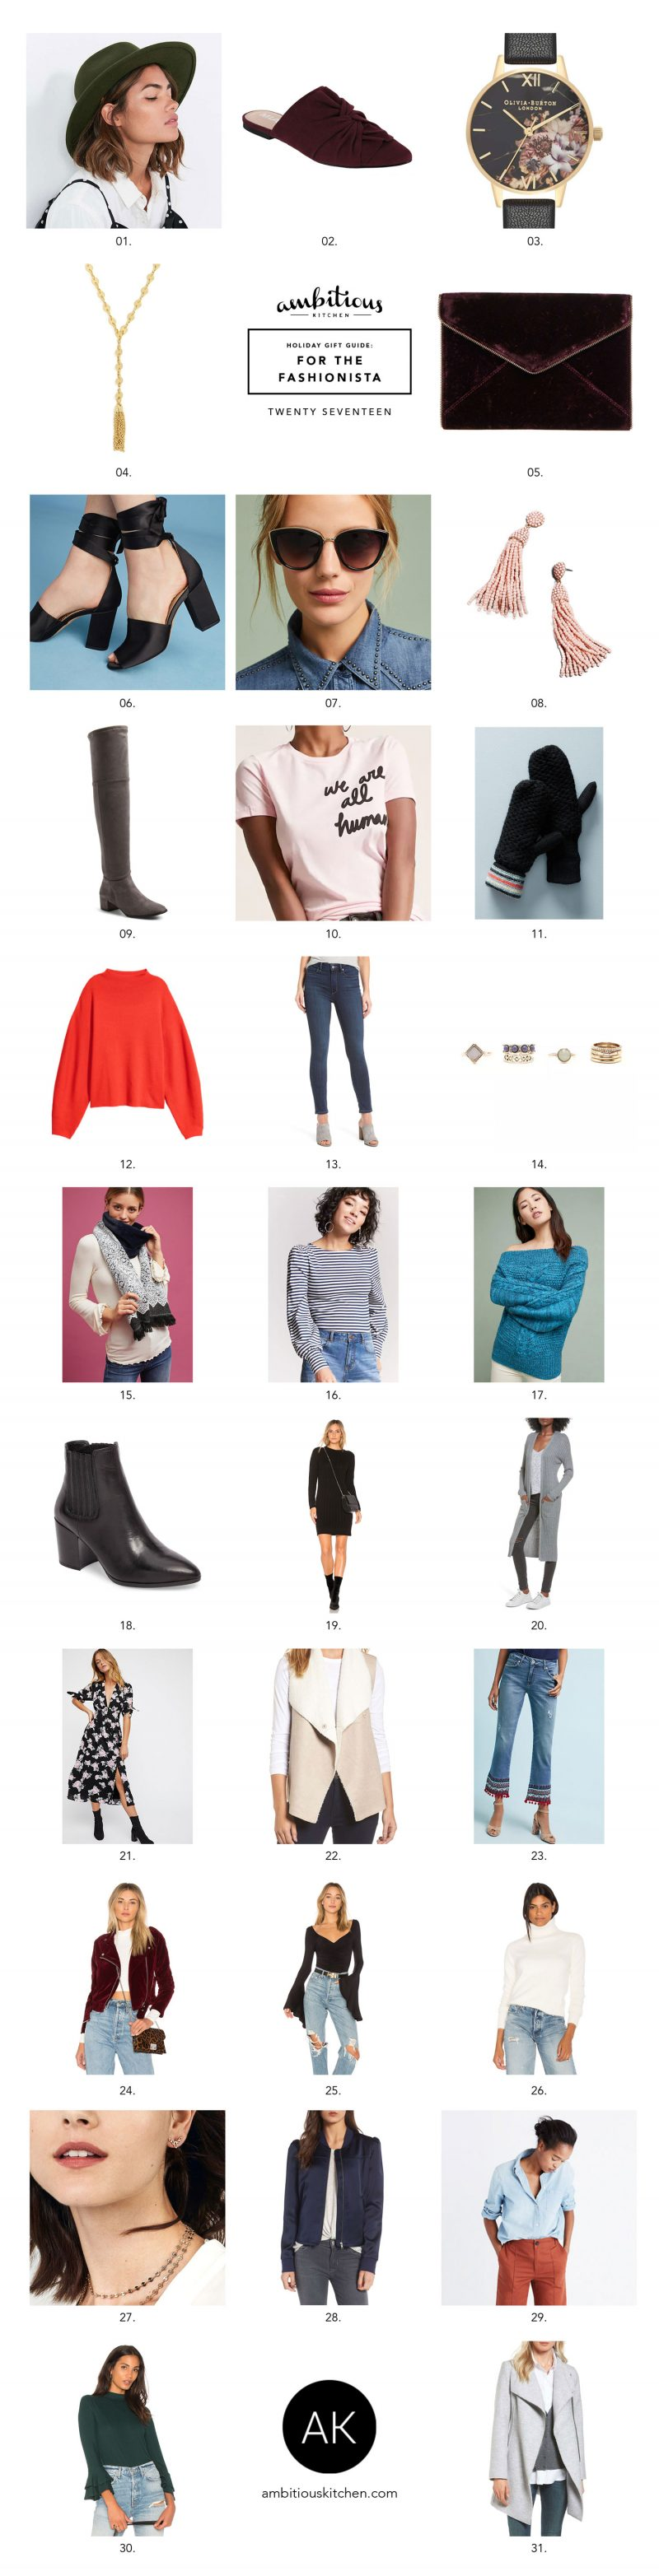 collage of gifts for fashionistas